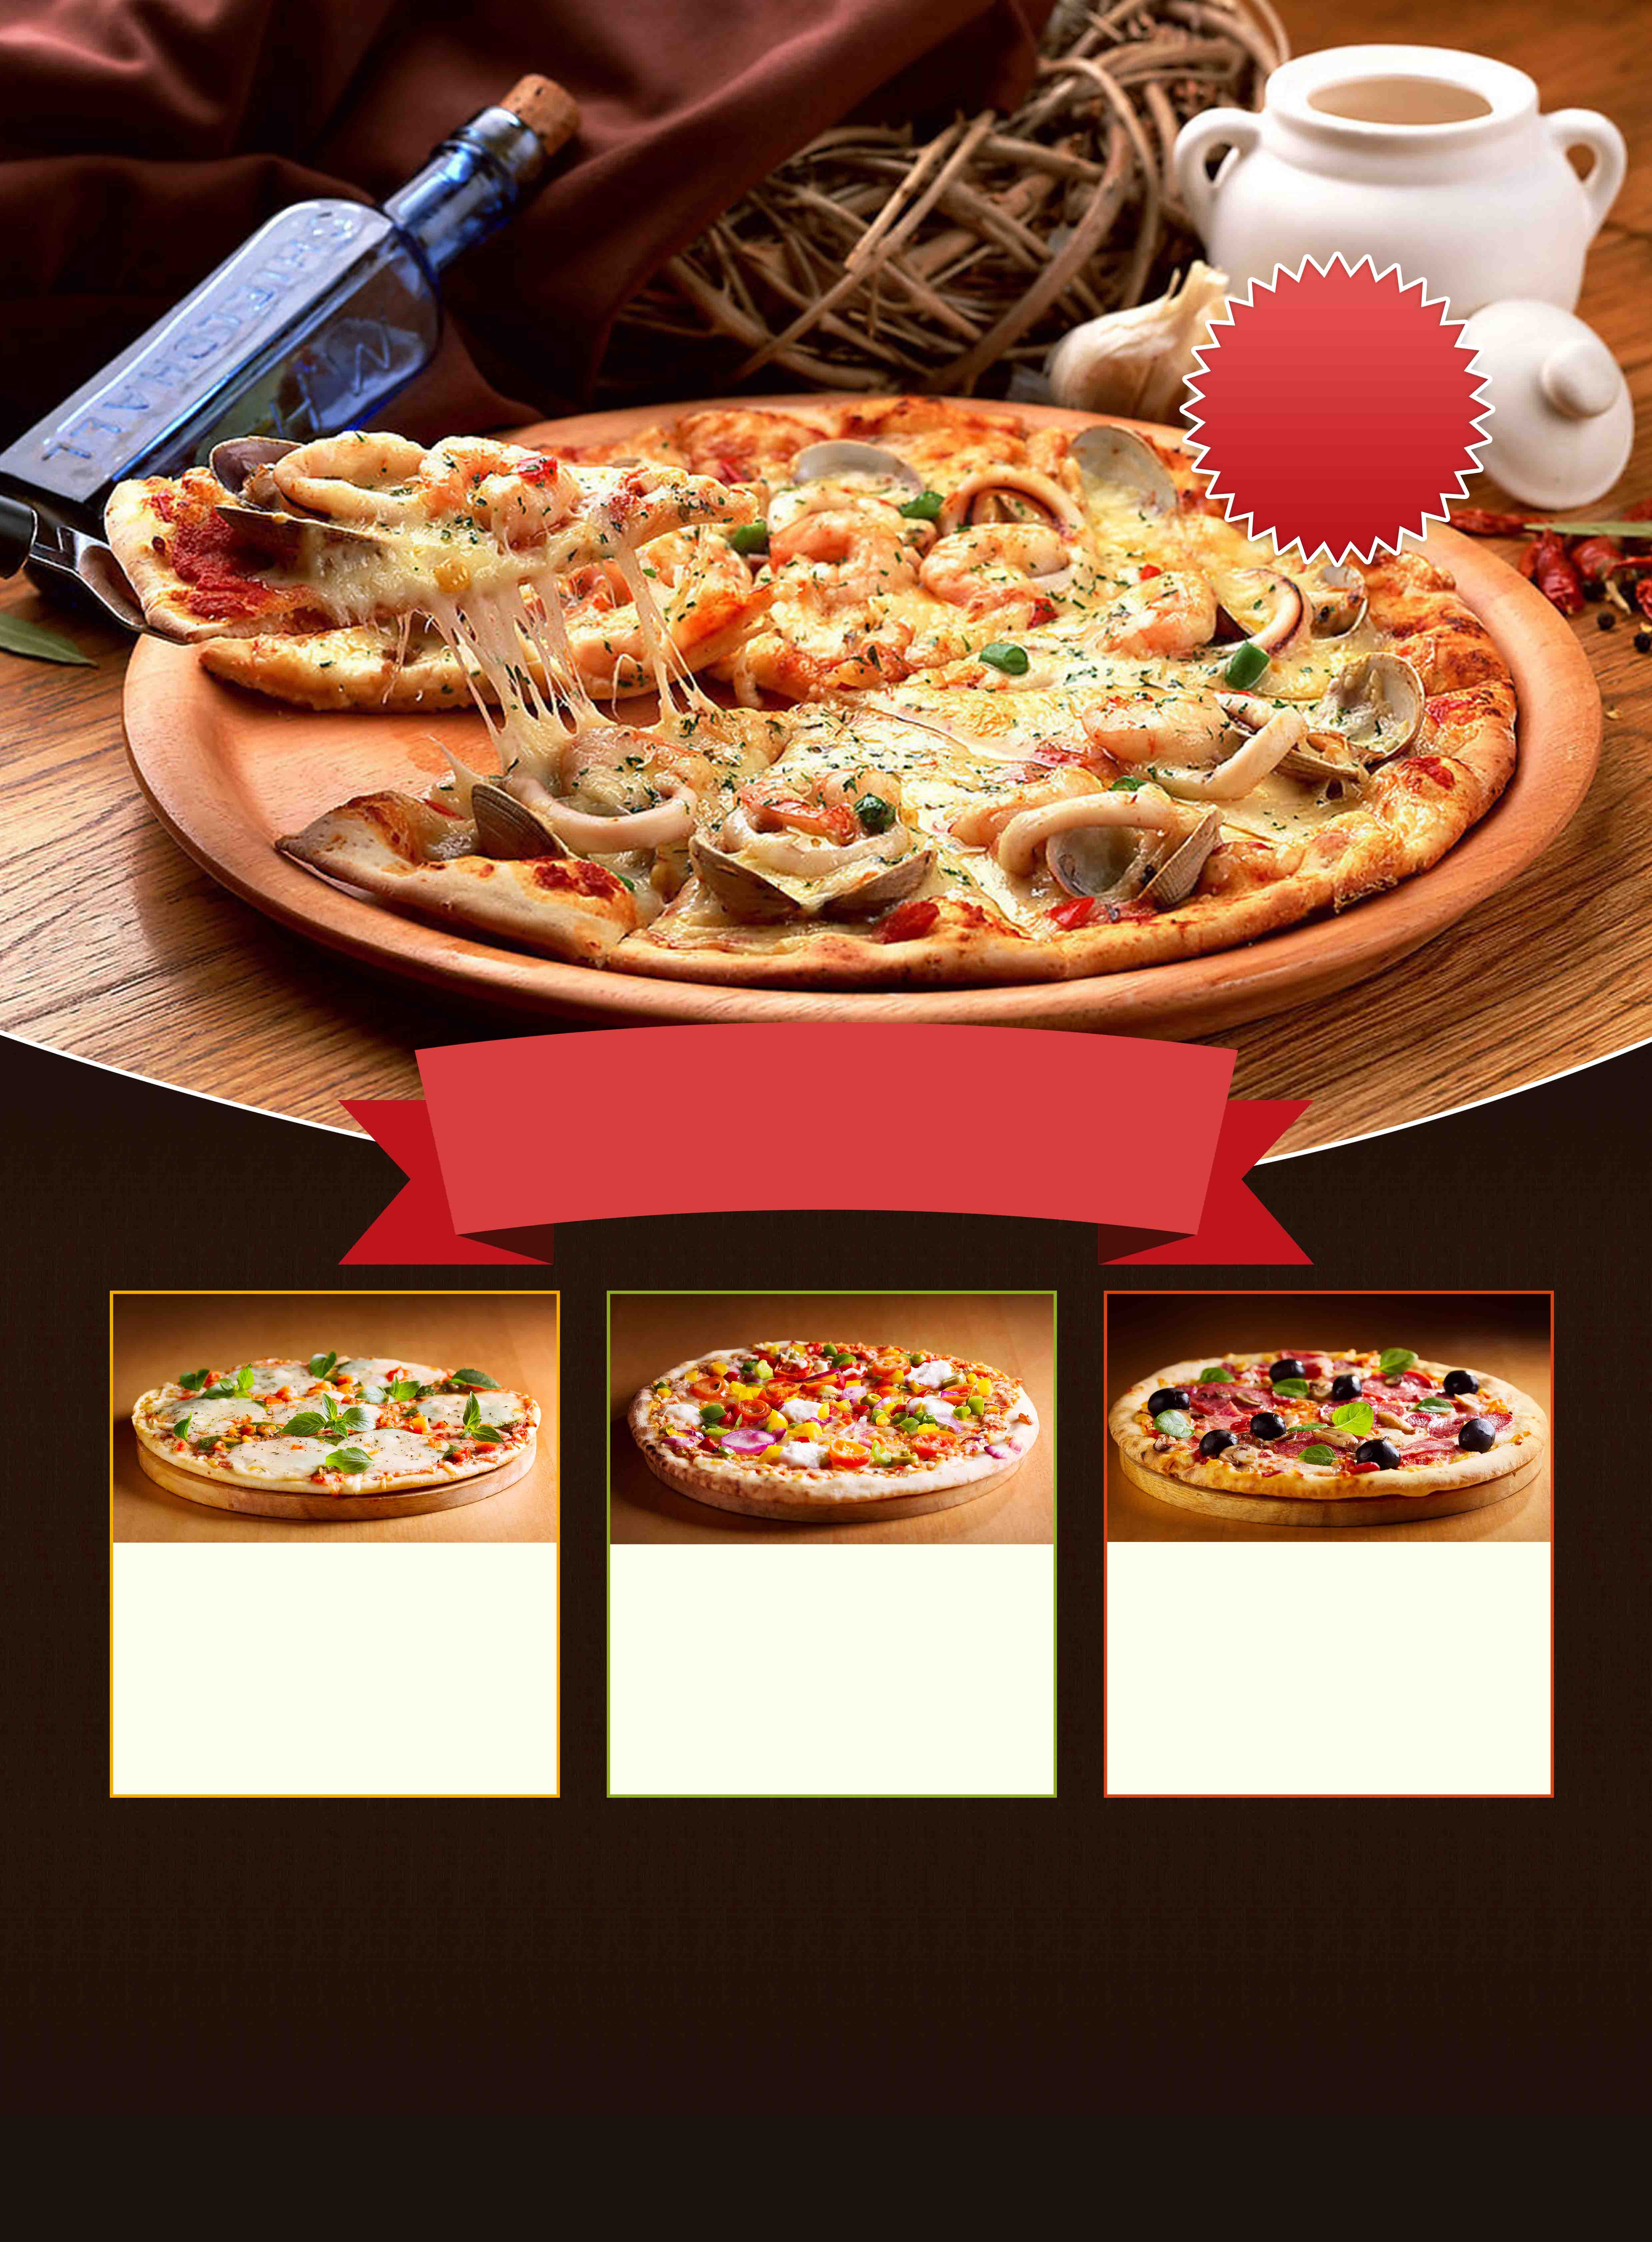 delicious italian pizza advertising poster background